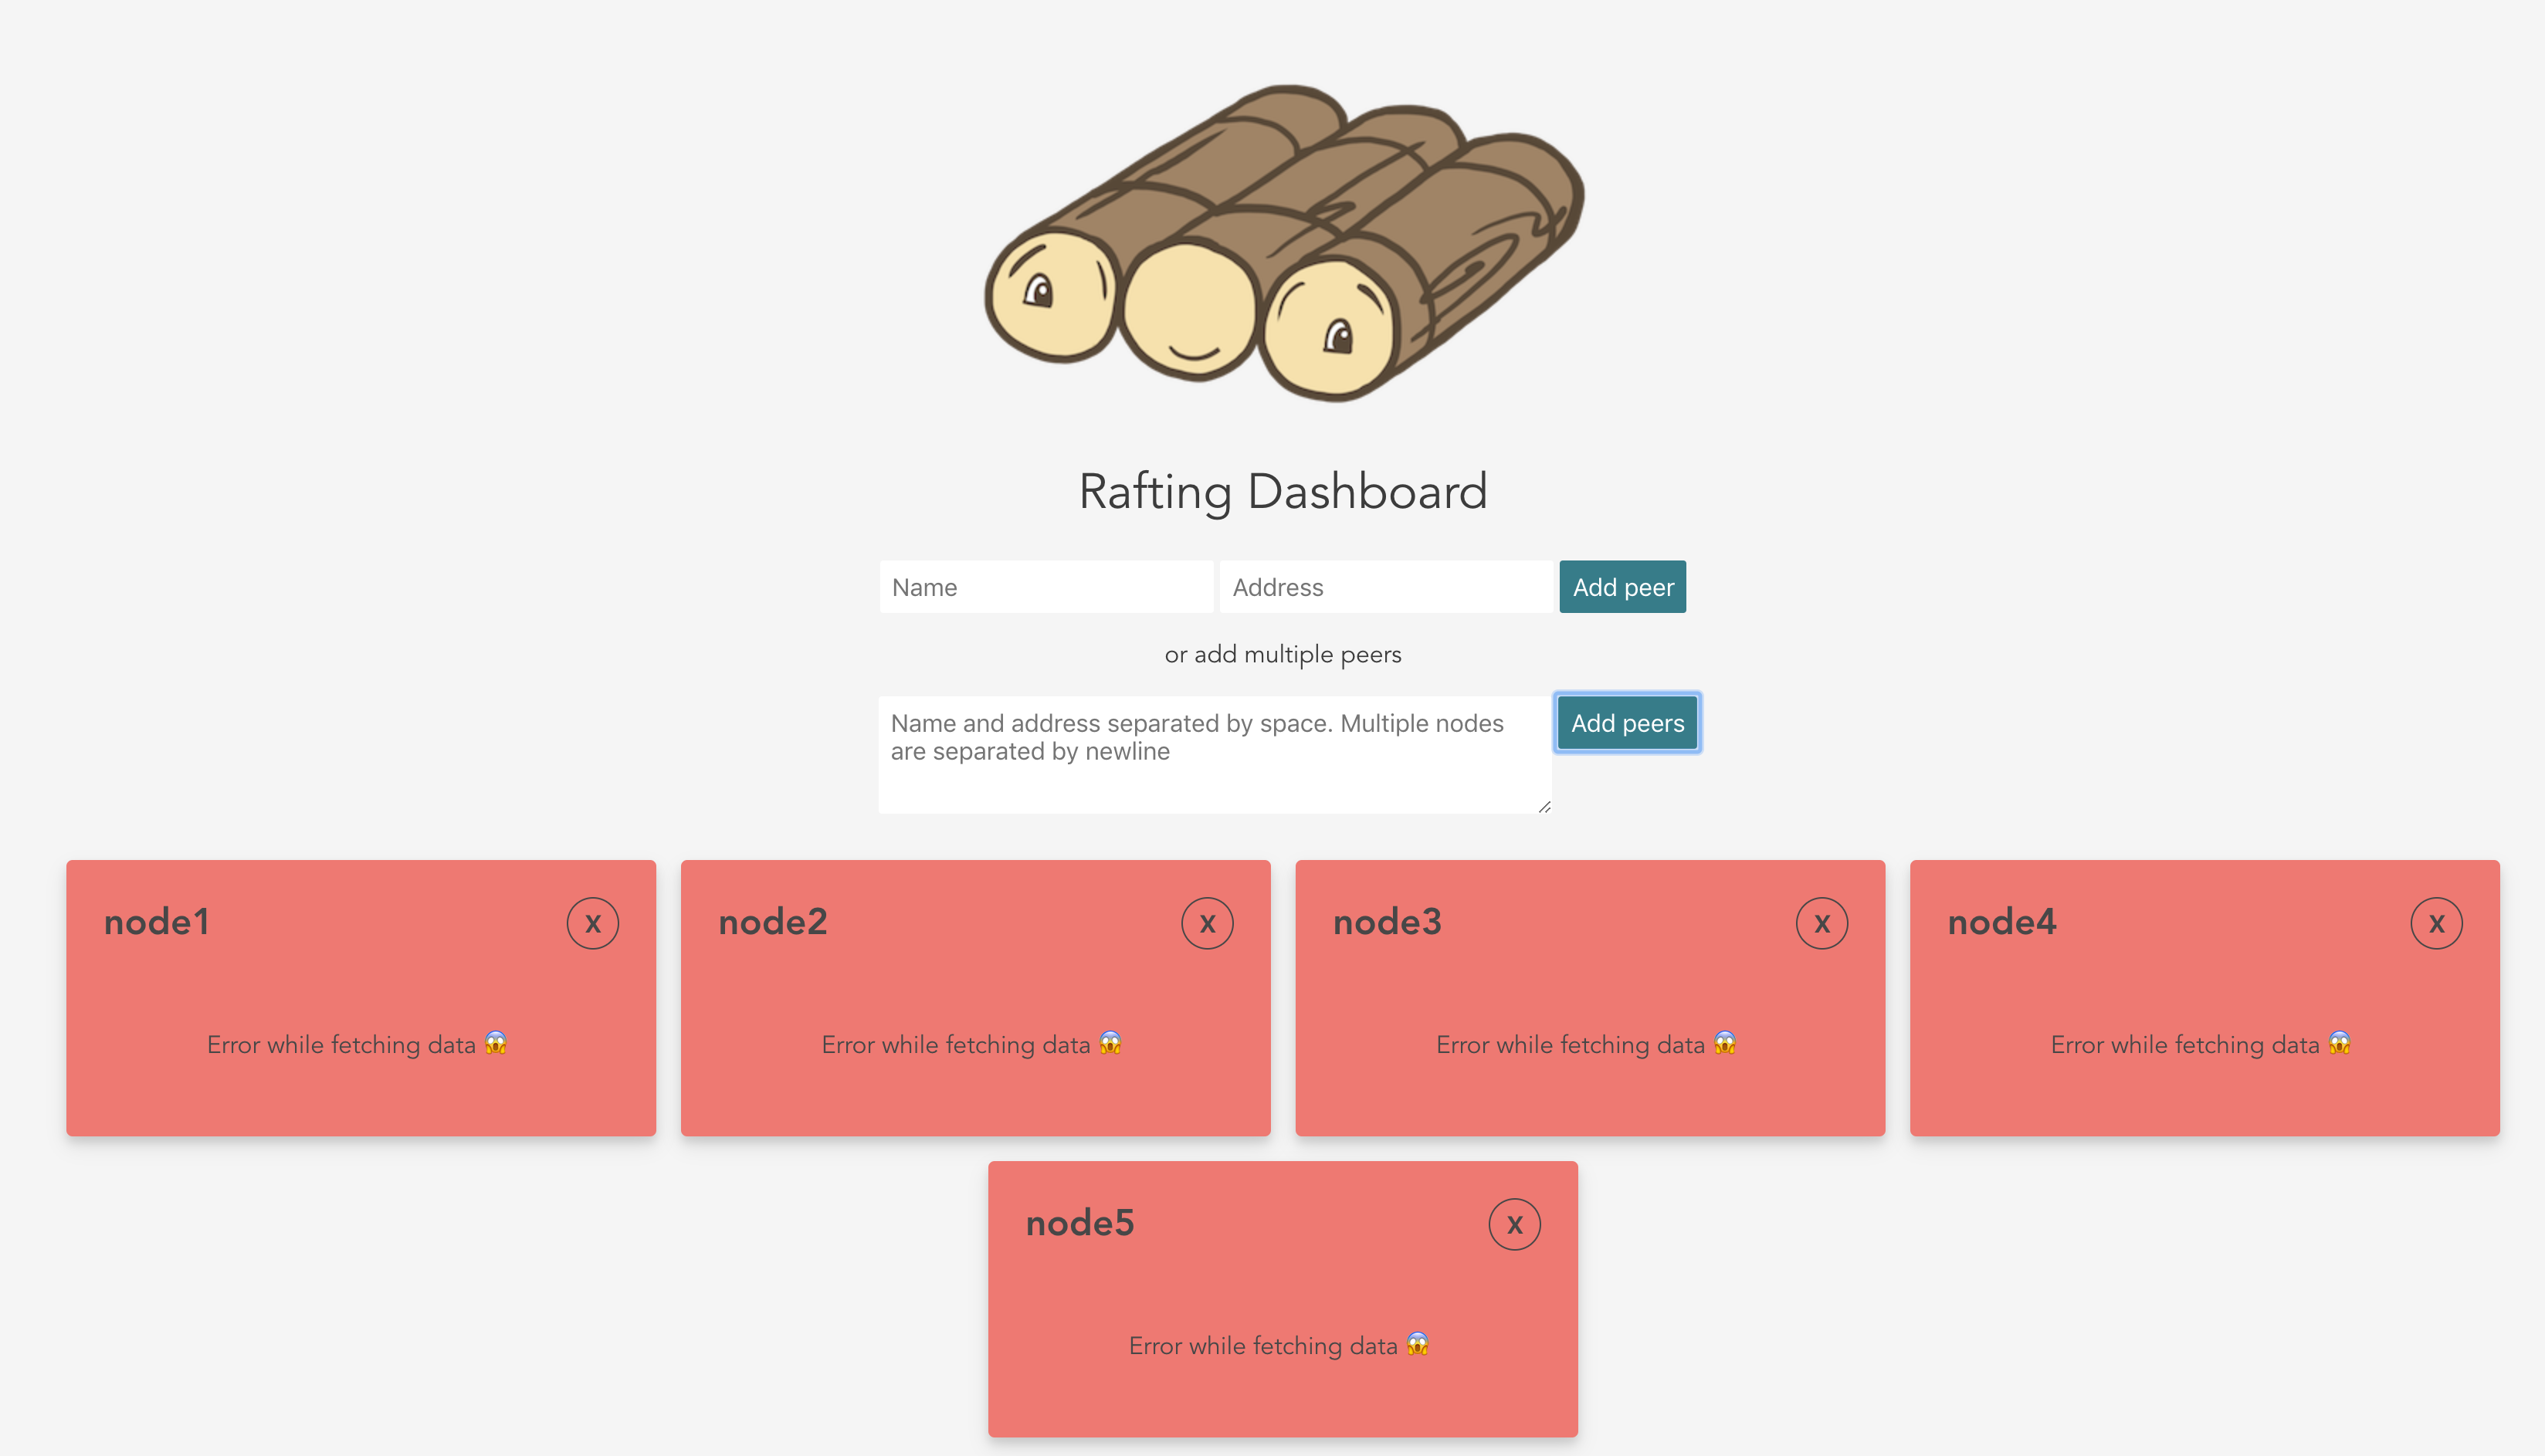 rafting dashboard